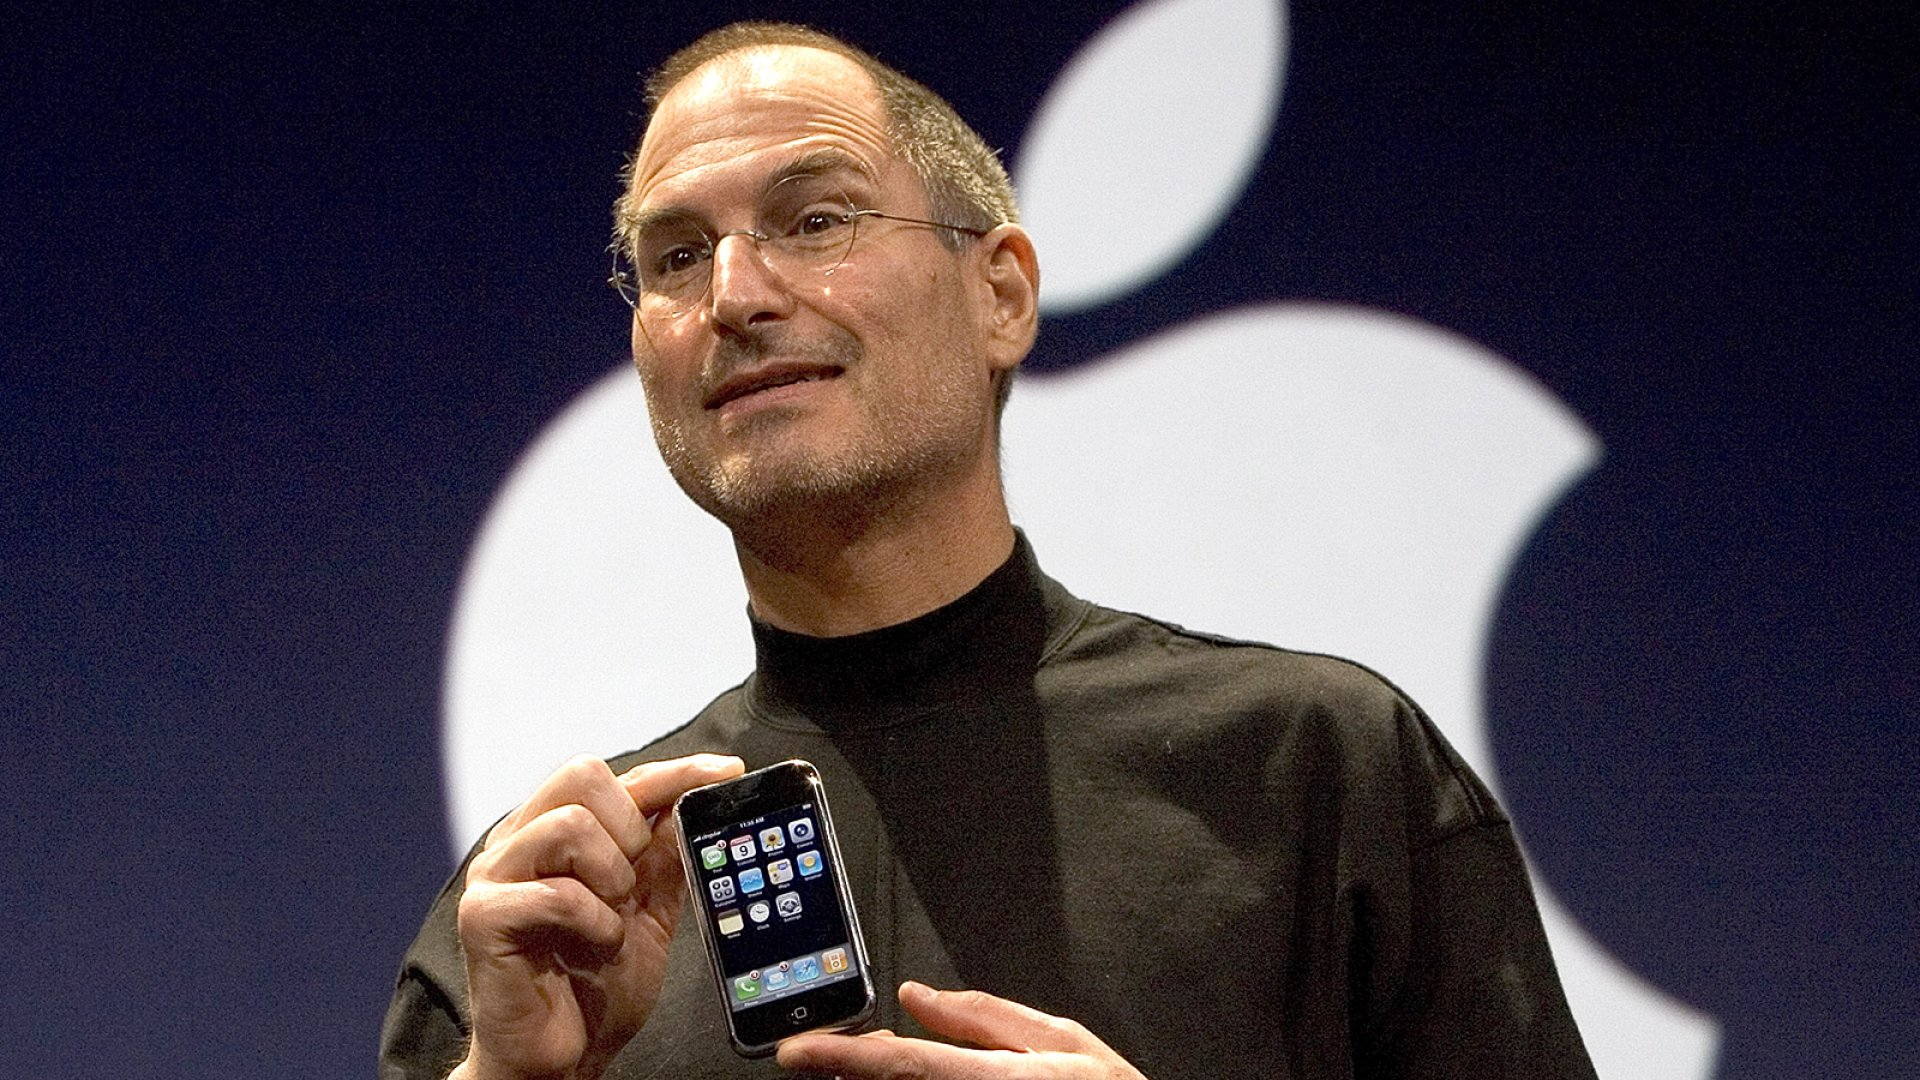 Apple founder Steve Jobs holds up the new iPhone that was introduced at Macworld on January 9, 2007 in San Francisco, California.